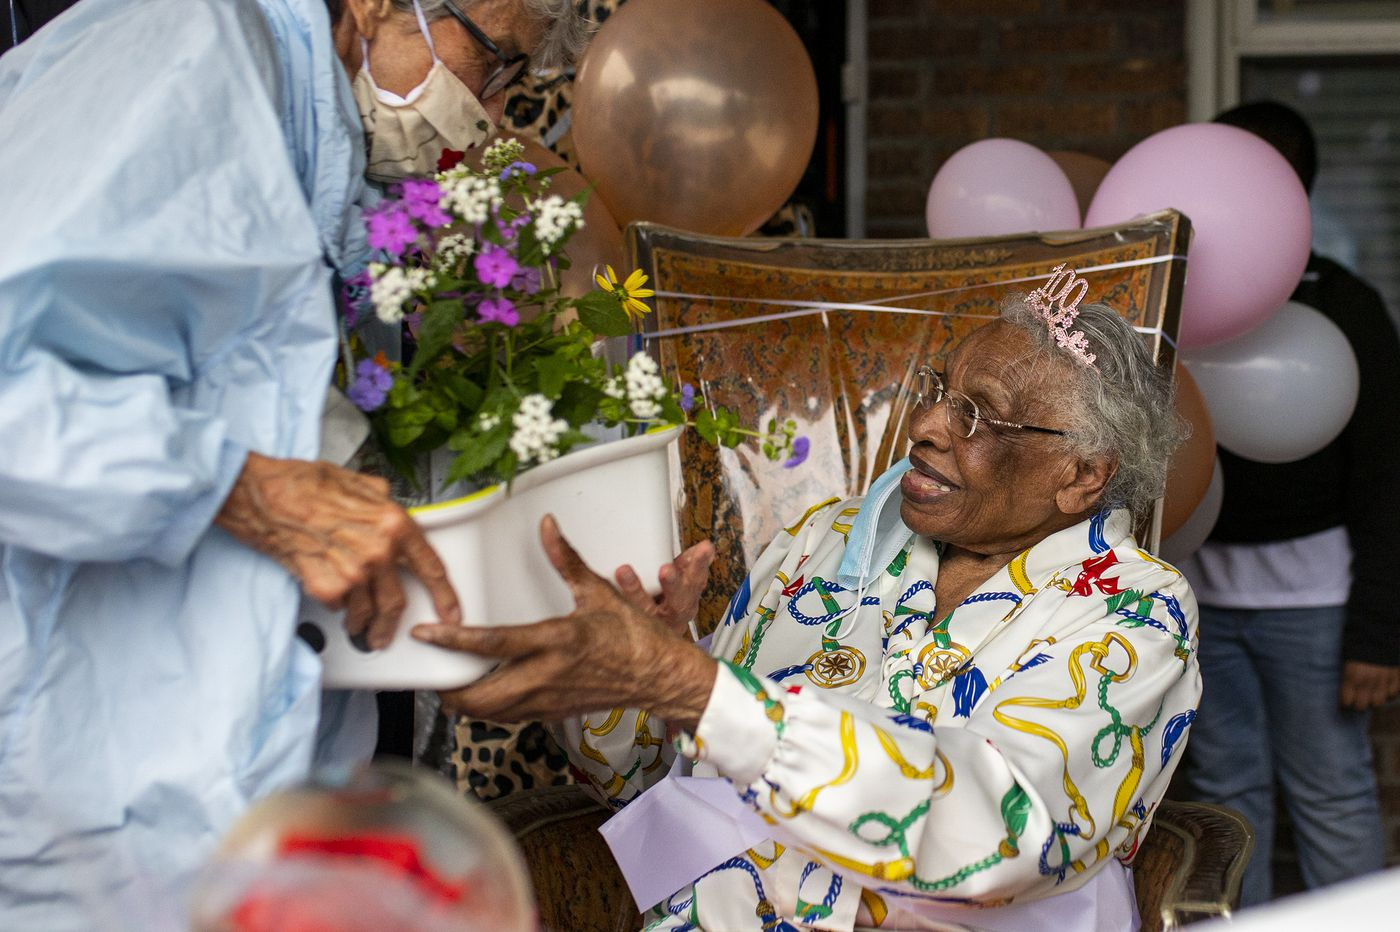 Ms. Rena shares her secrets to living to 100 in the age of coronavirus